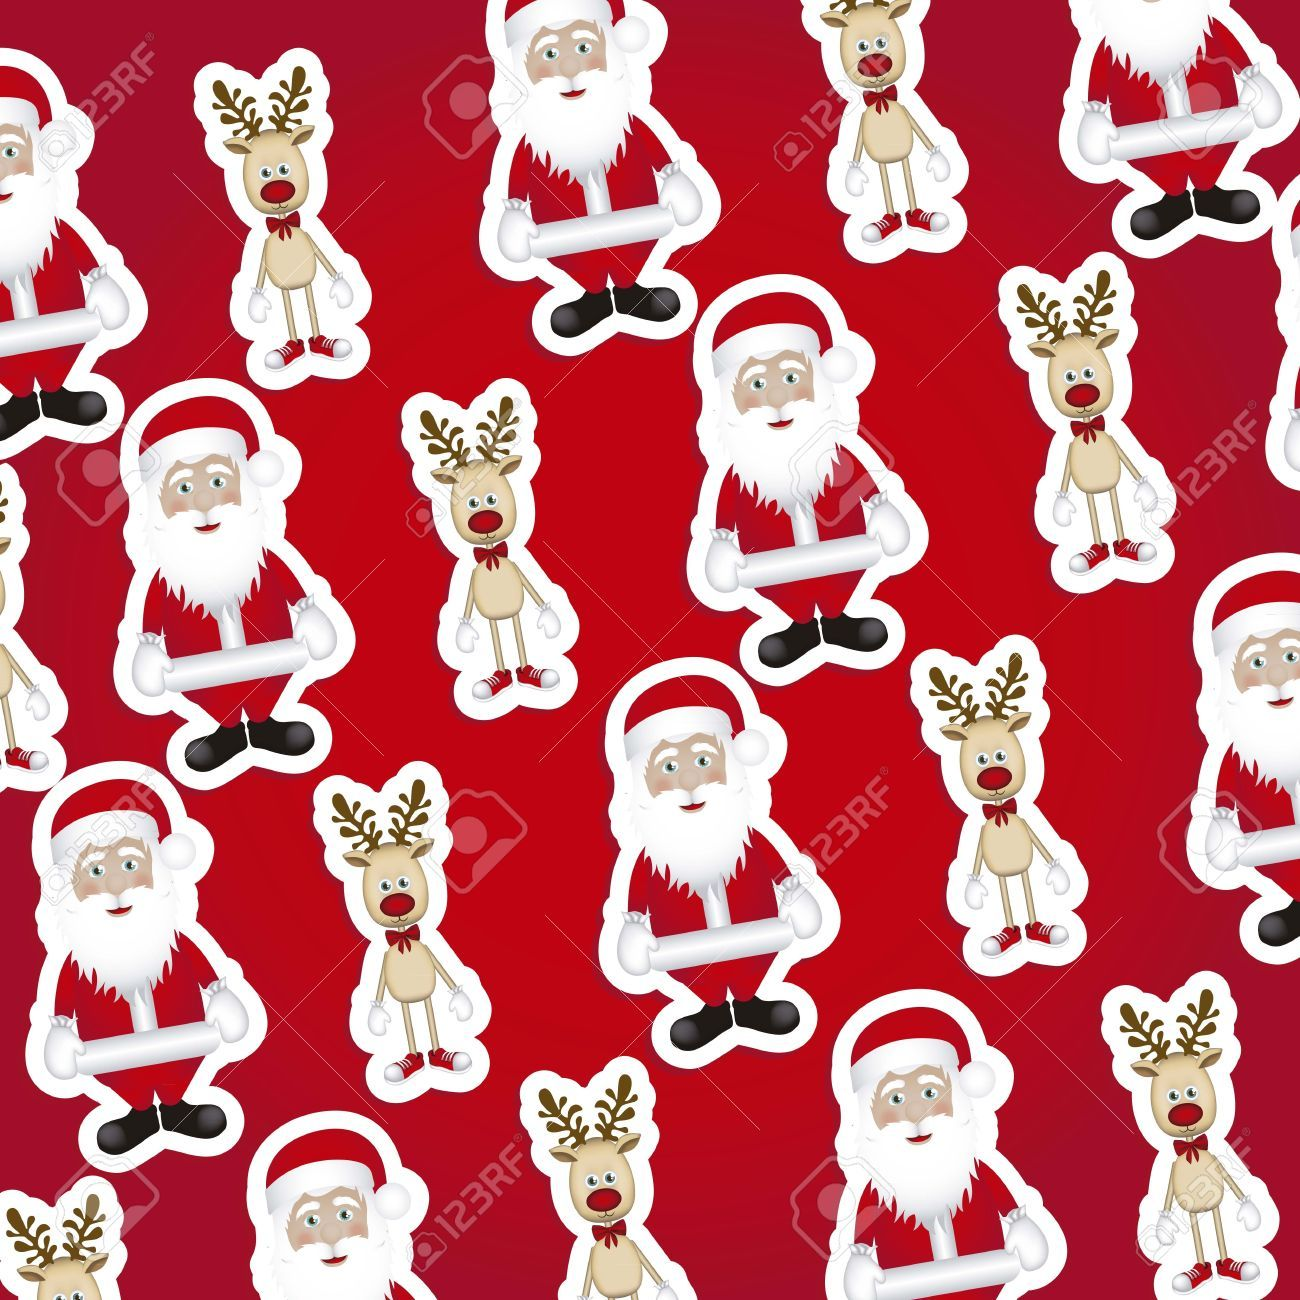 Christmas wrapping paper clipart 7 » Clipart Portal.